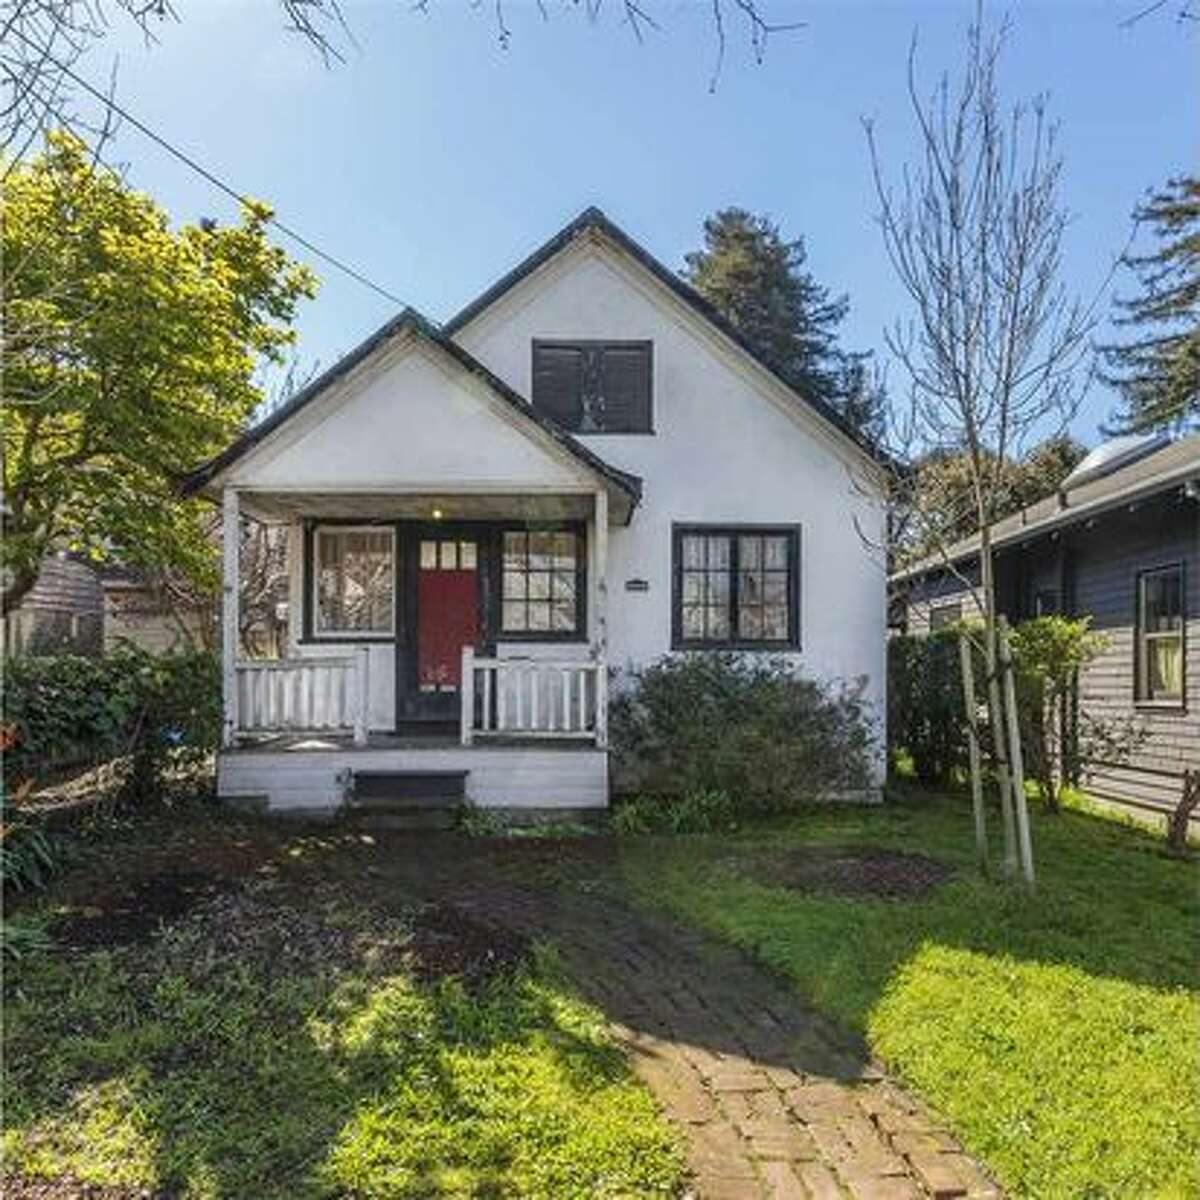 A teardown at 383 60th St., in the heart of Oakland's Rockridge neighborhood, hit the market for $495,000 in March 2017. A month later it sold for $755,000.